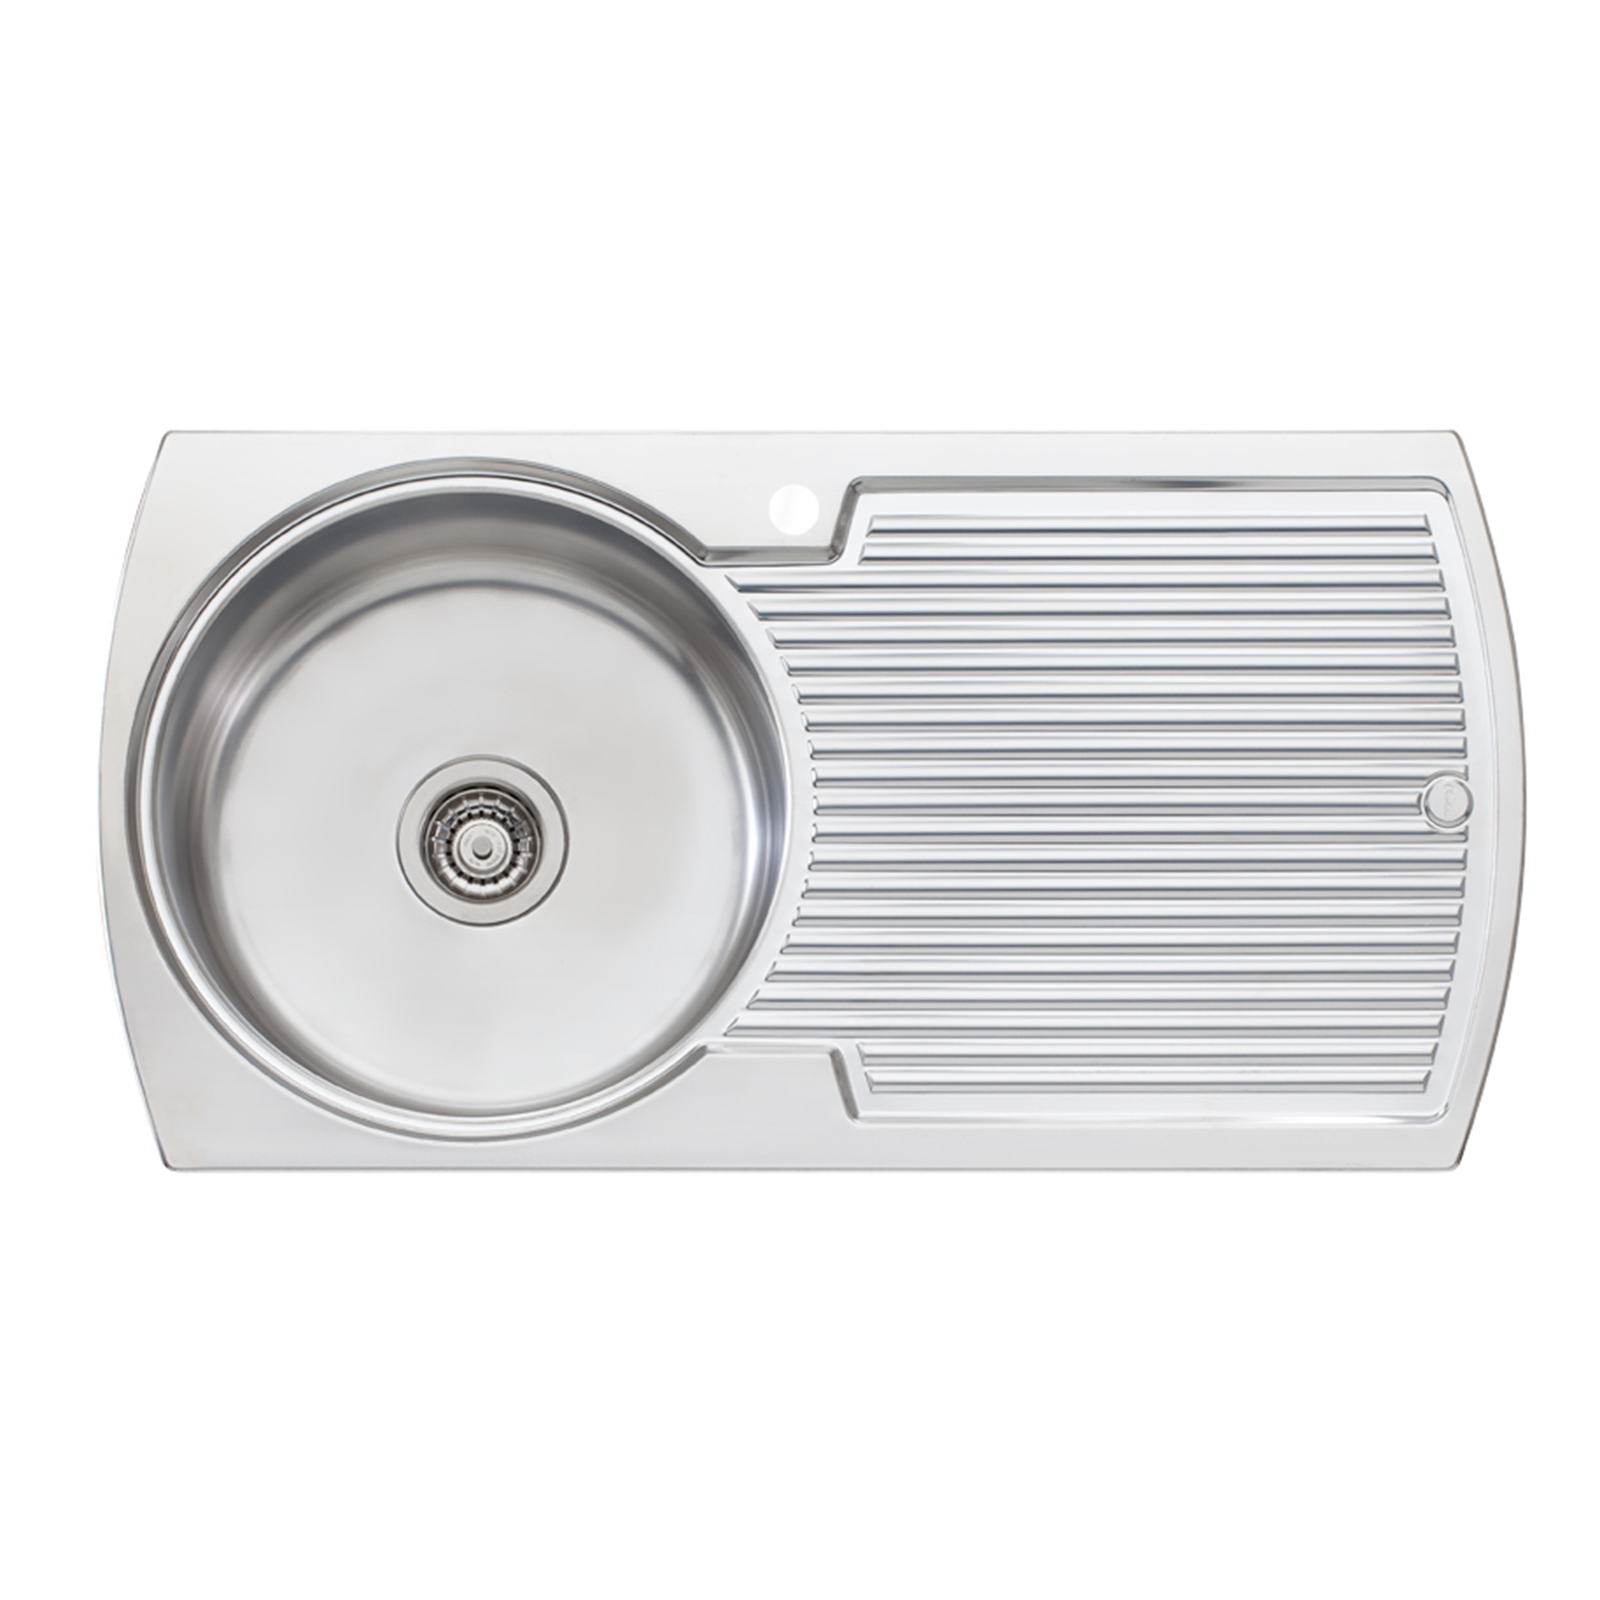 Oliveri Solitaire 950 x 500mm Left Hand Round Bowl Inset Sink With Drainer